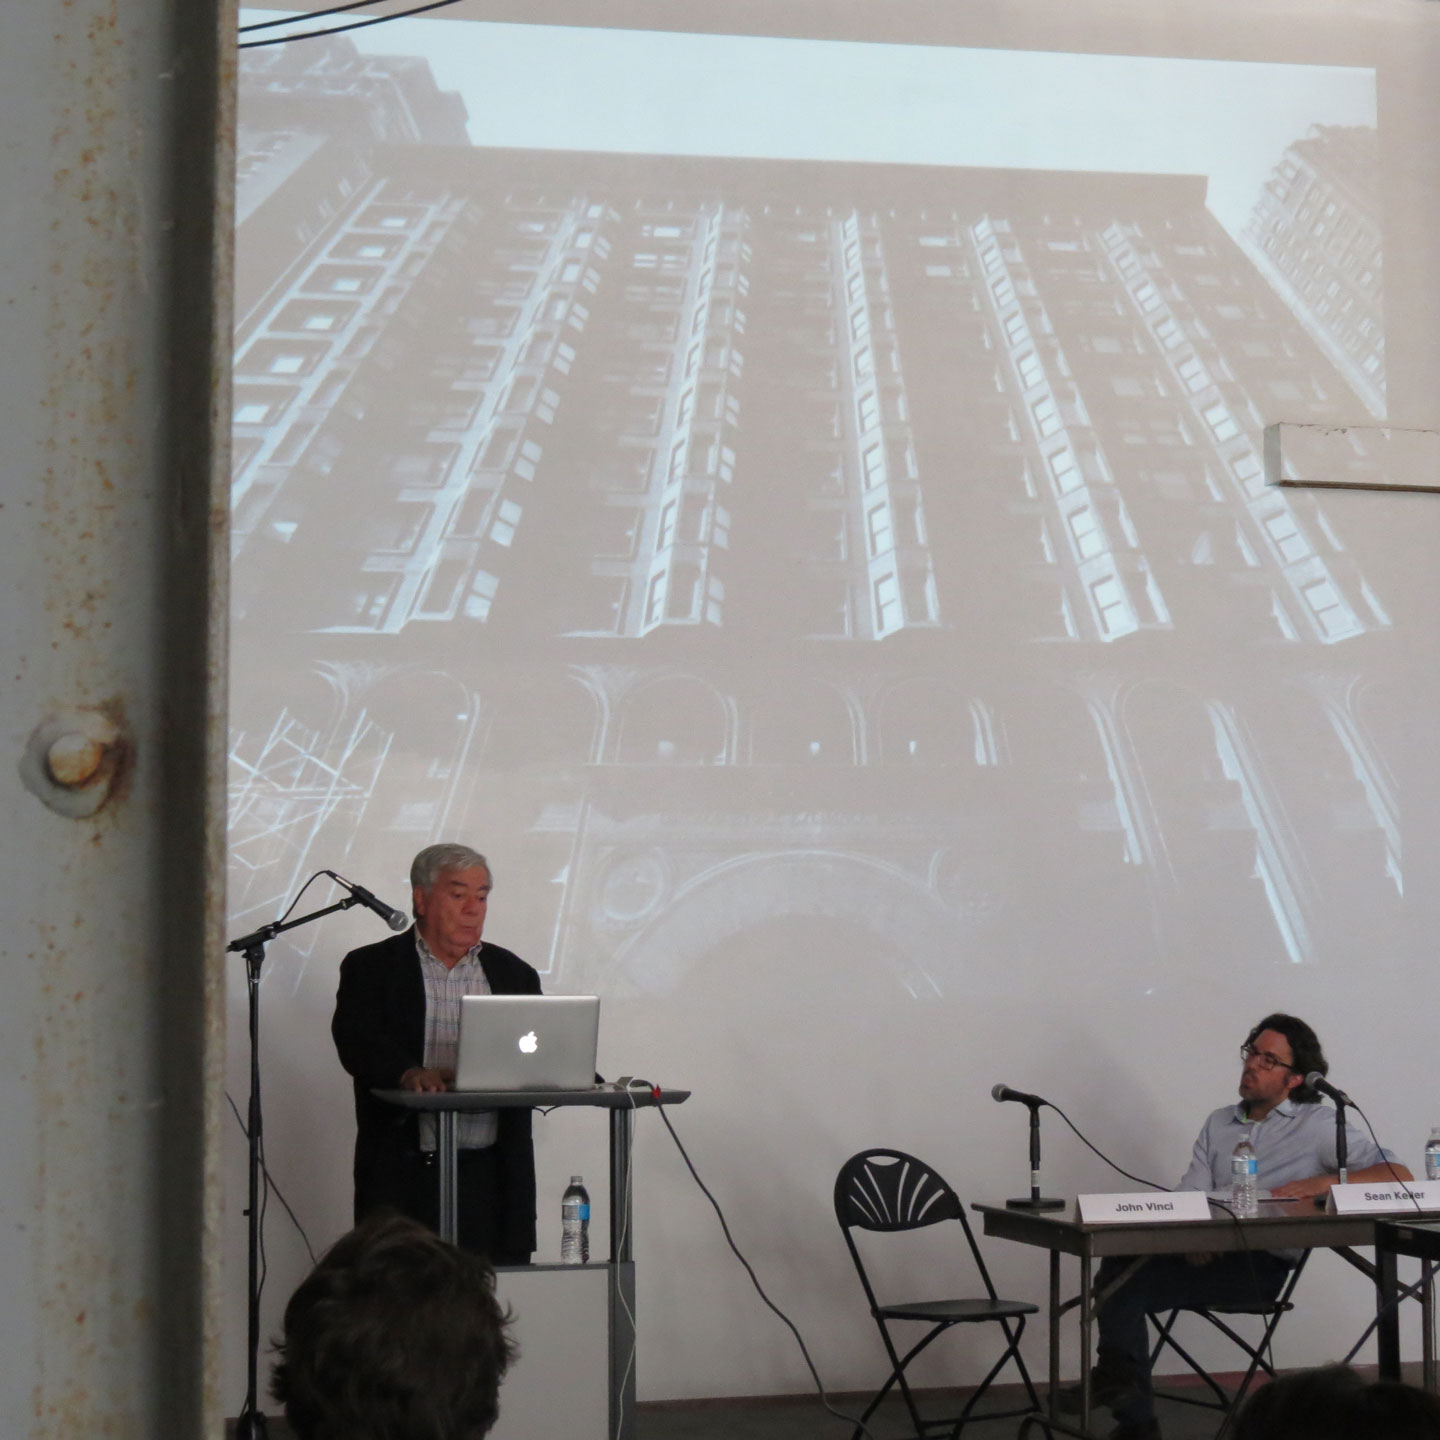 a presentation at the Salvage 3.0 symposium